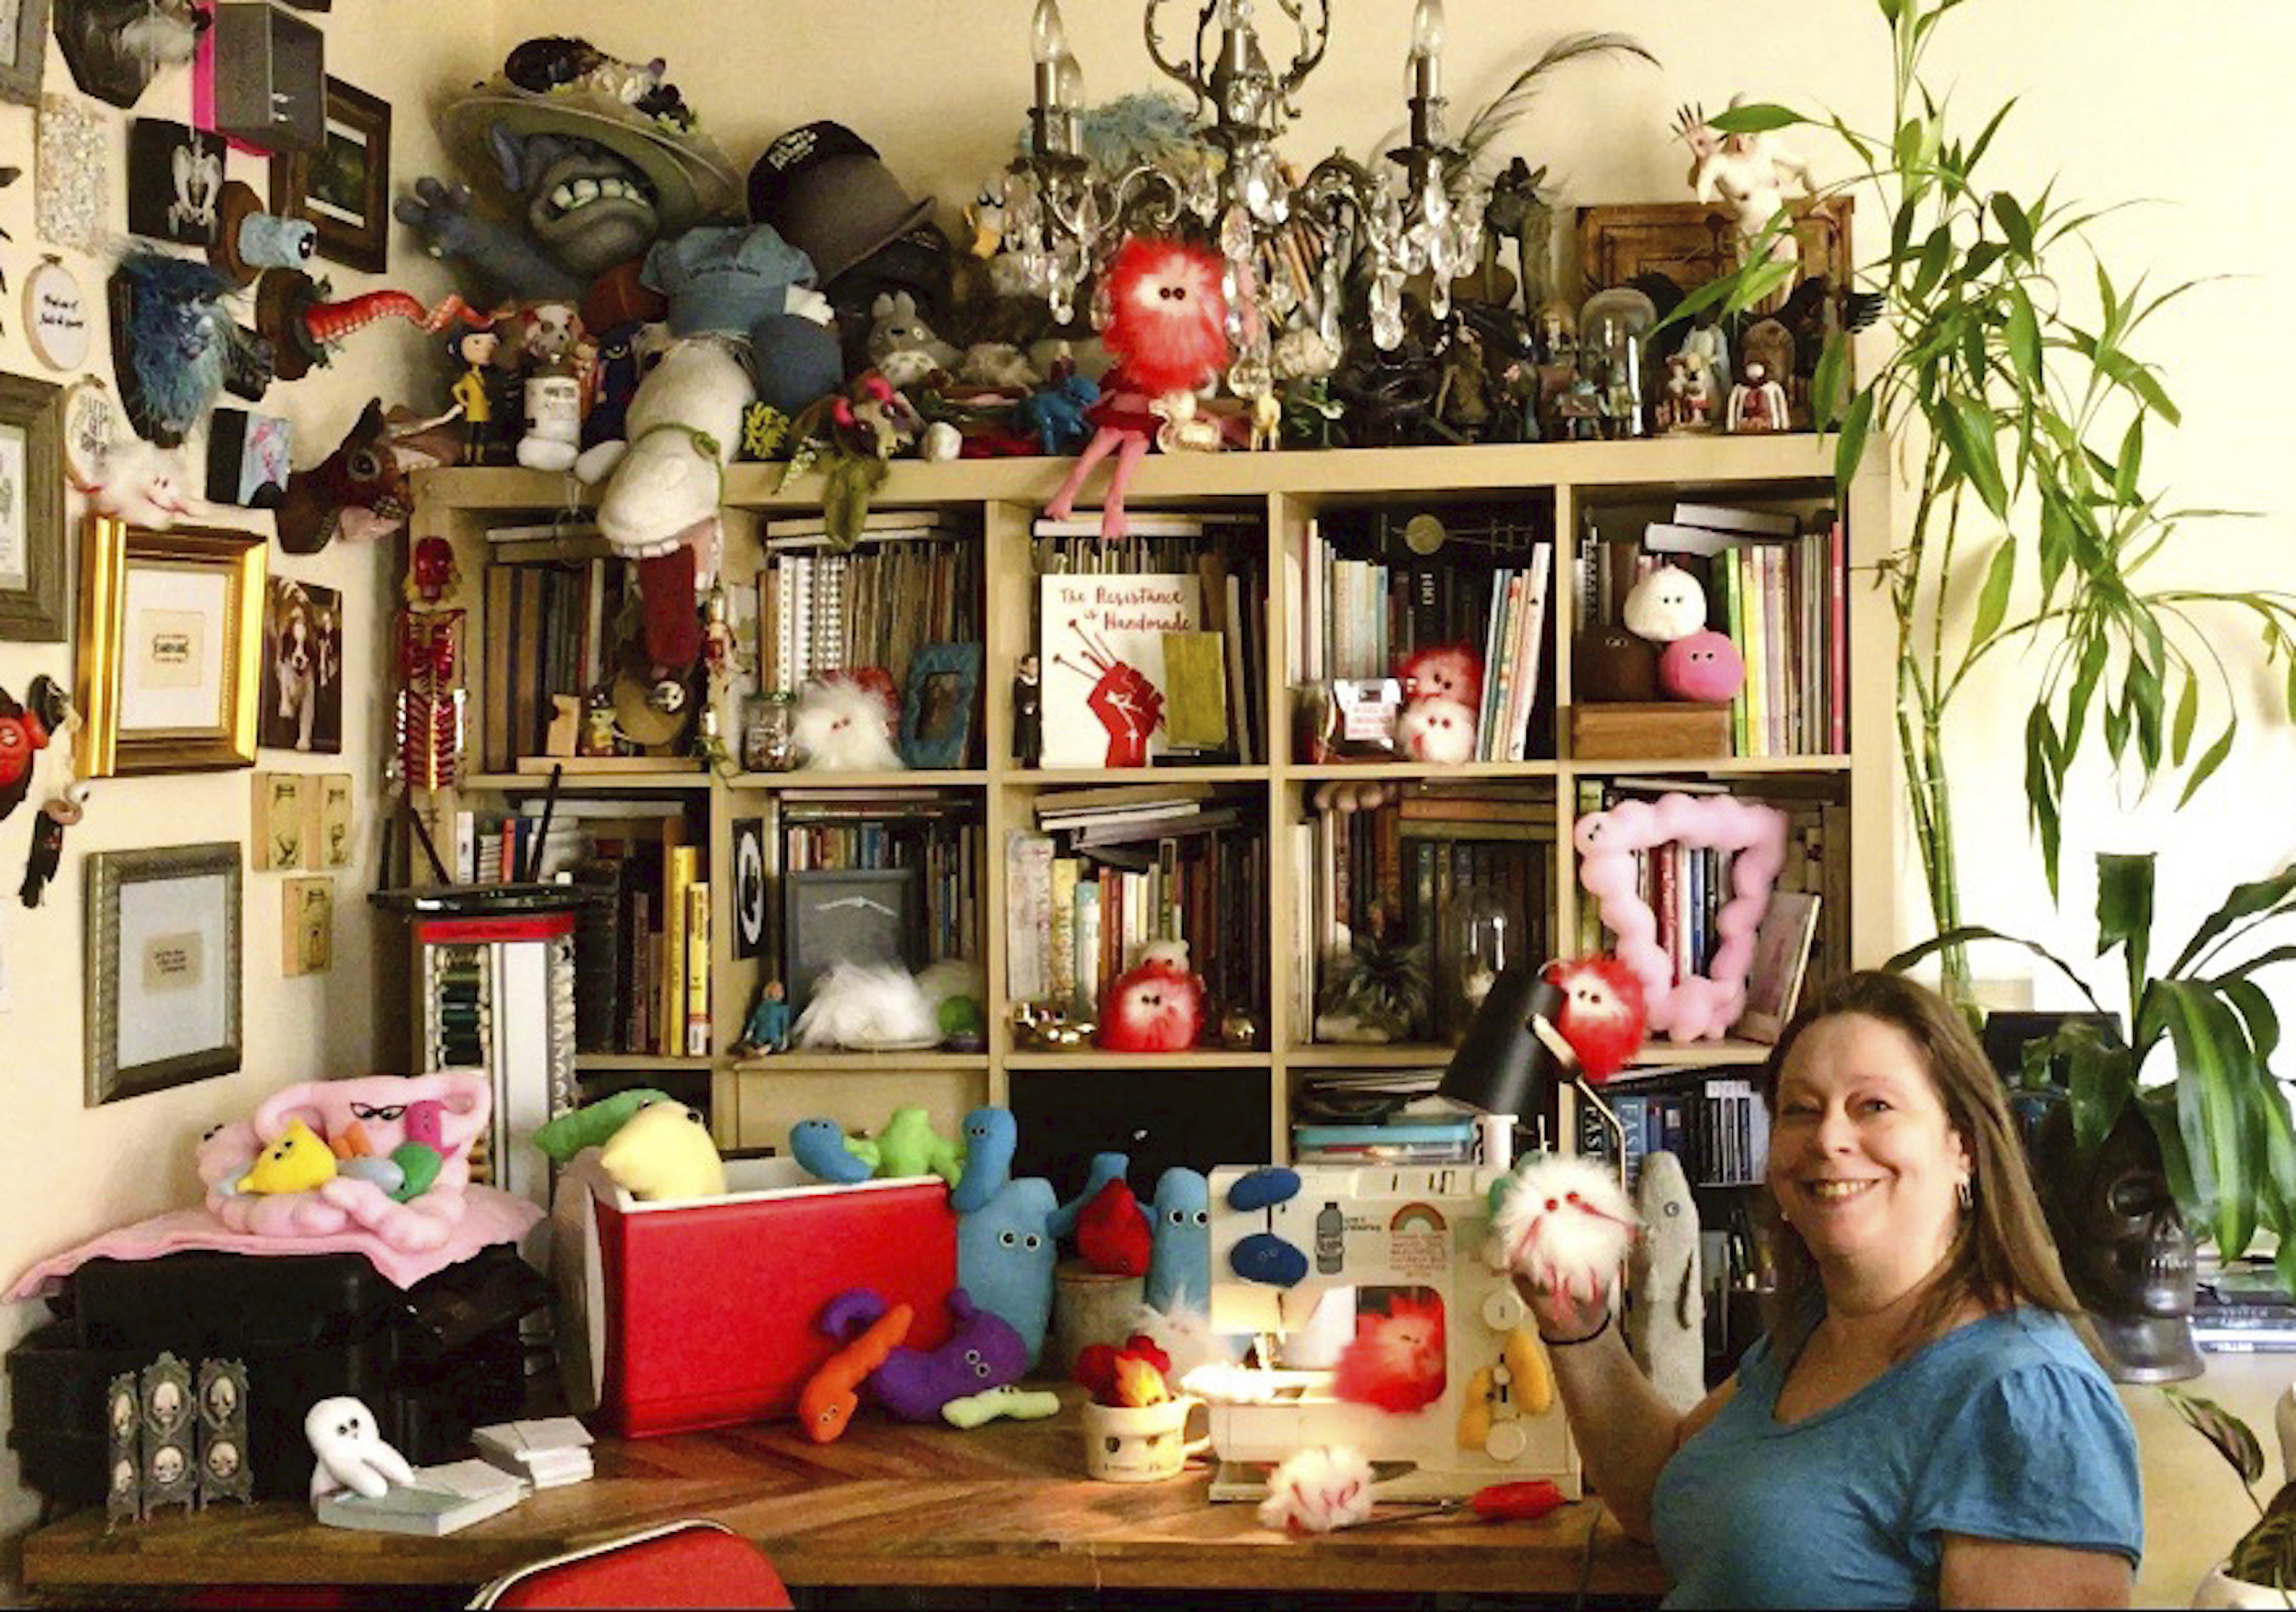 This July 25, 2020 photo shows Amy Micallef posing with her craft creations at her home. While Broadway stages remain dark due to the pandemic, Broadway workers are concentrating on side hustles.